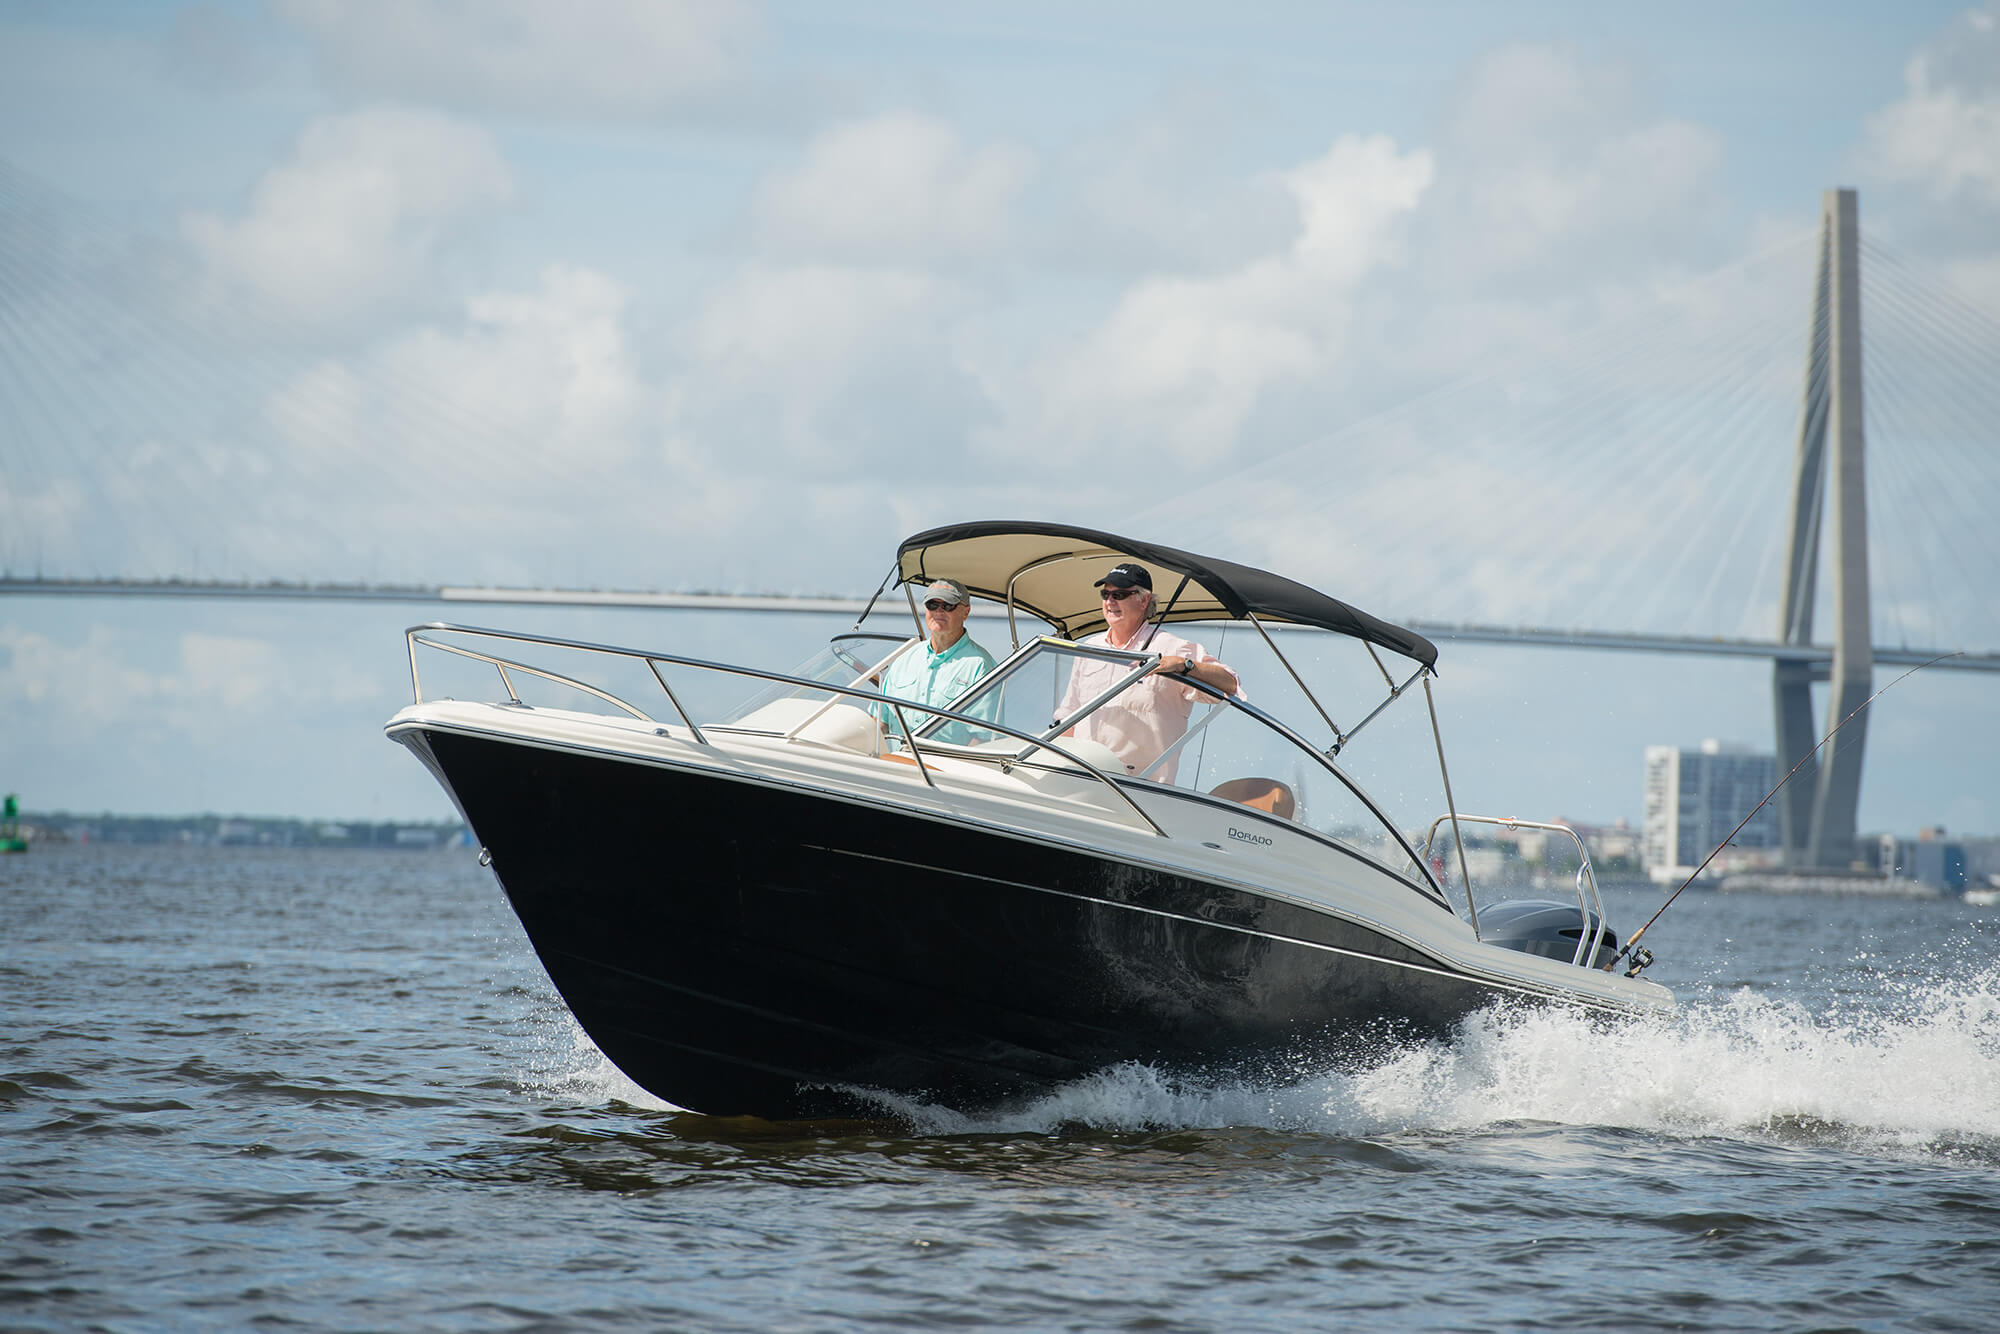 Power boat with Bimini made with black Sunbrella Supreme fabric with bridge in background